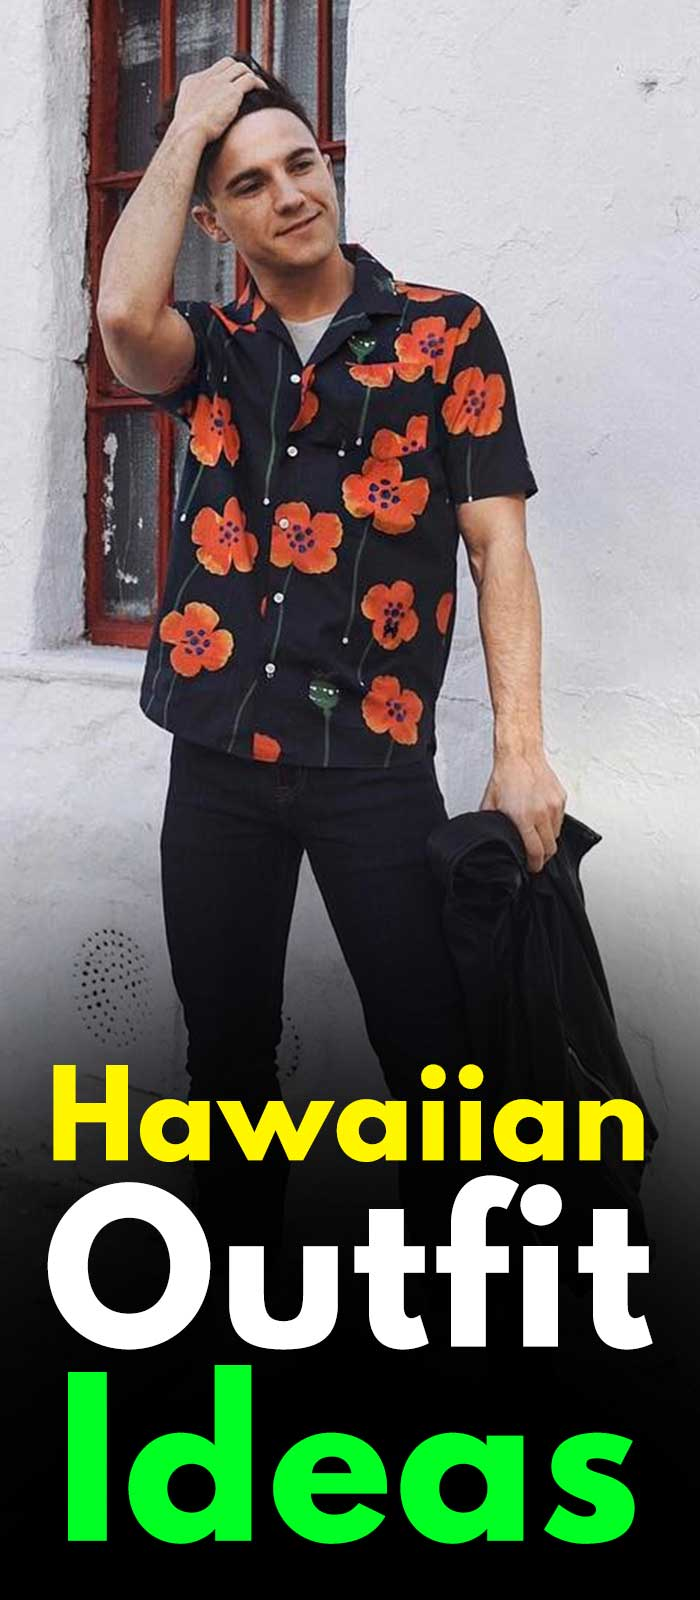 Hawaiian Outfit Ideas